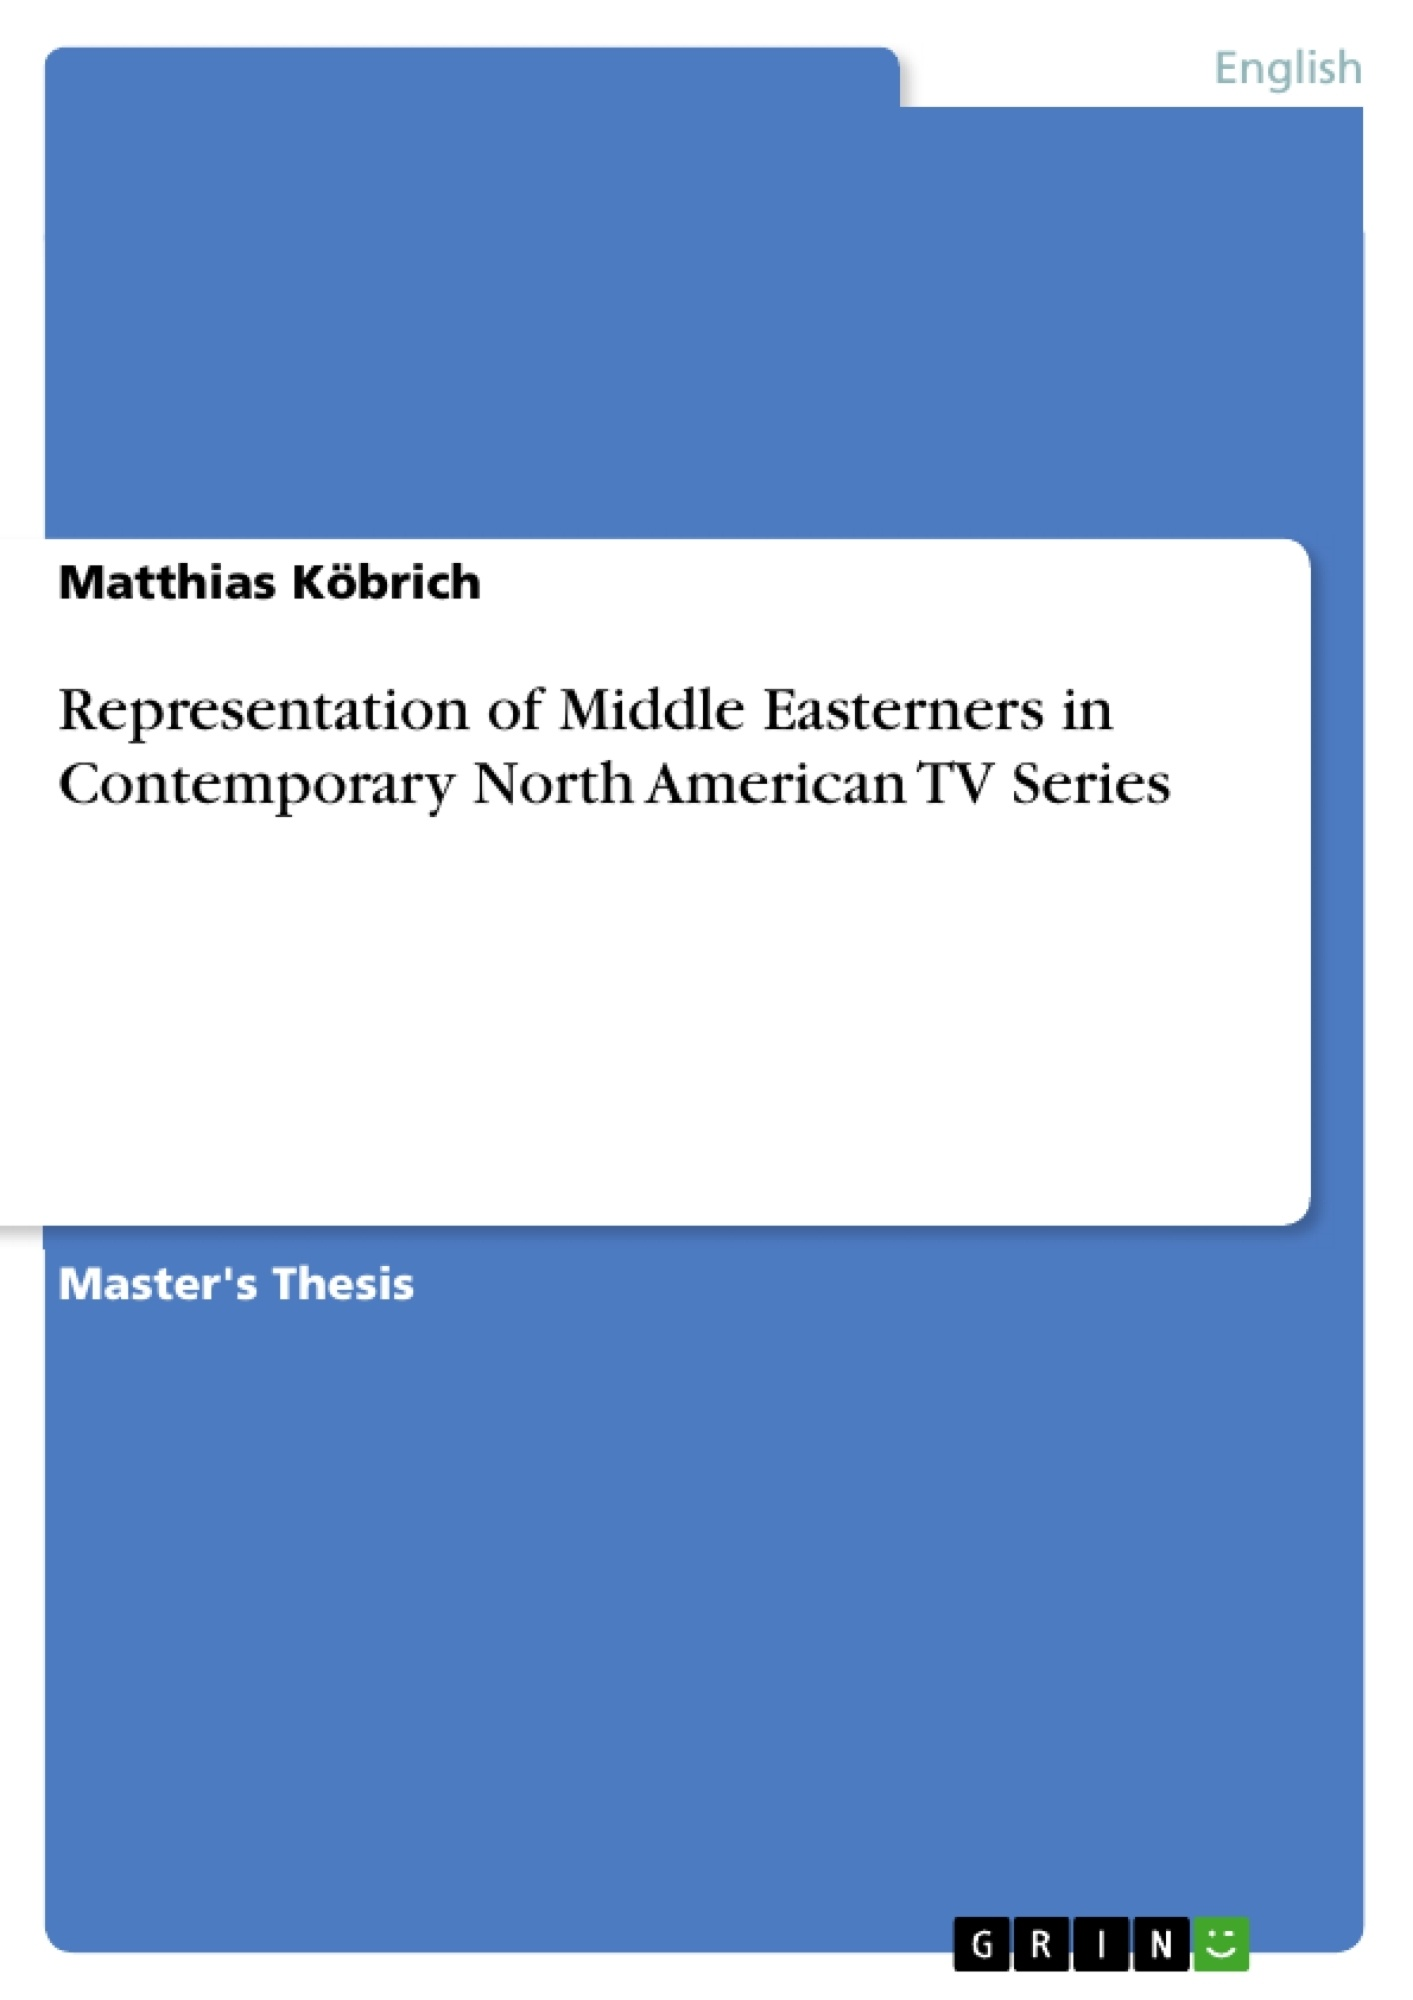 Title: Representation of Middle Easterners in Contemporary North American TV Series